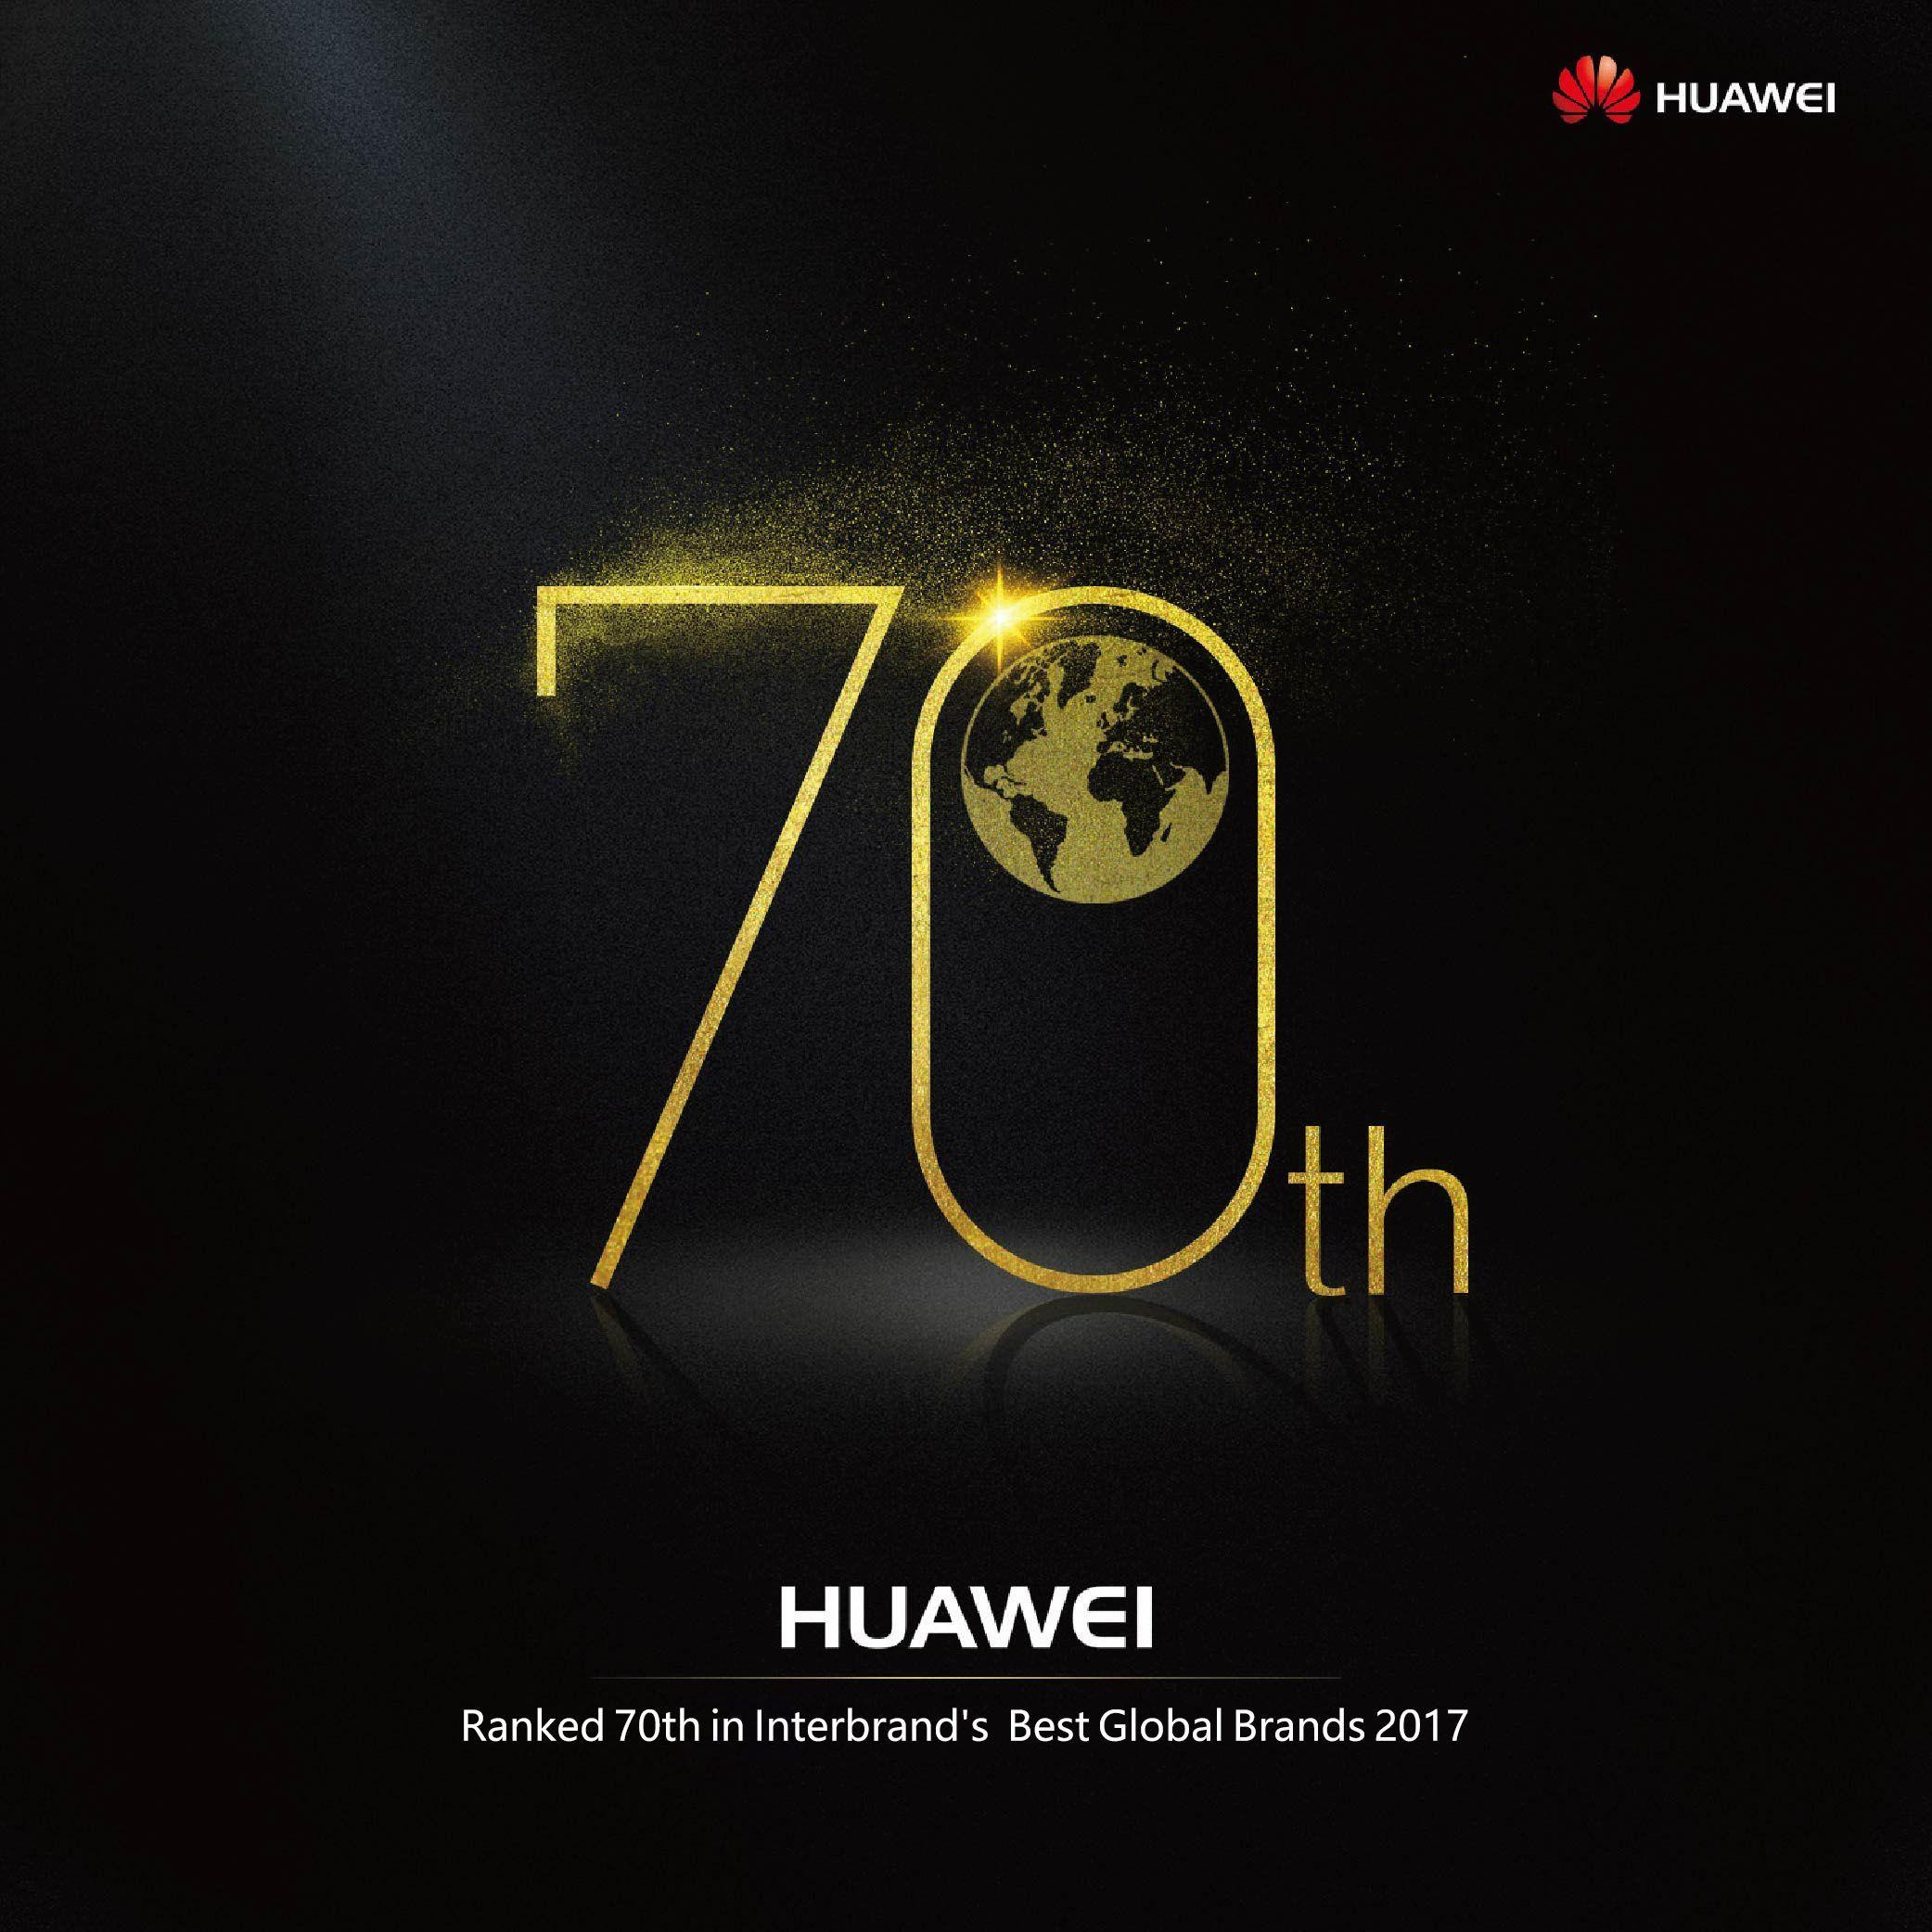 Huawei Best Global Brands 2017